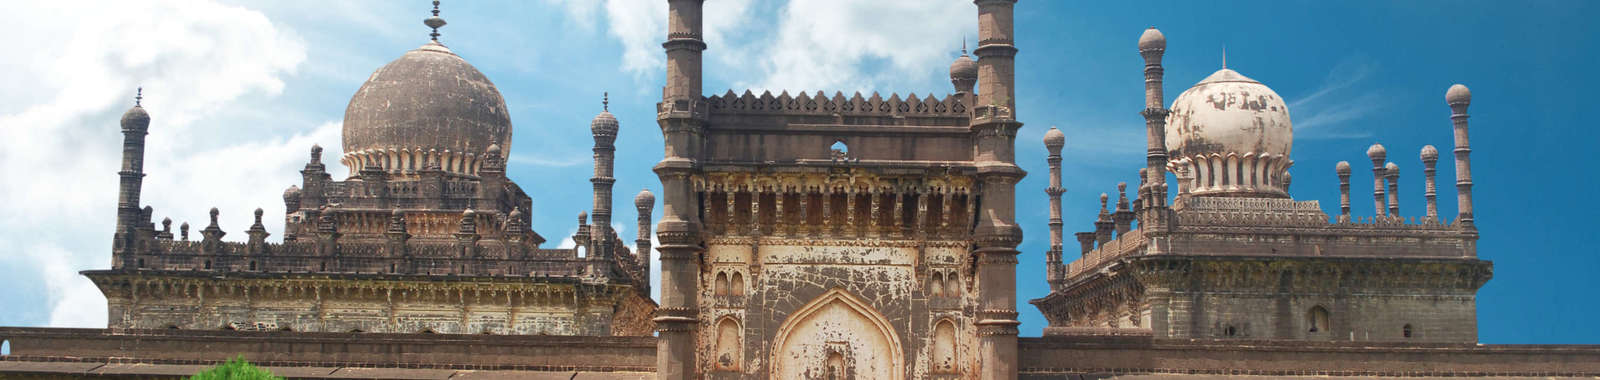 Explore historic Hyderabad on a tailor made holiday to South India